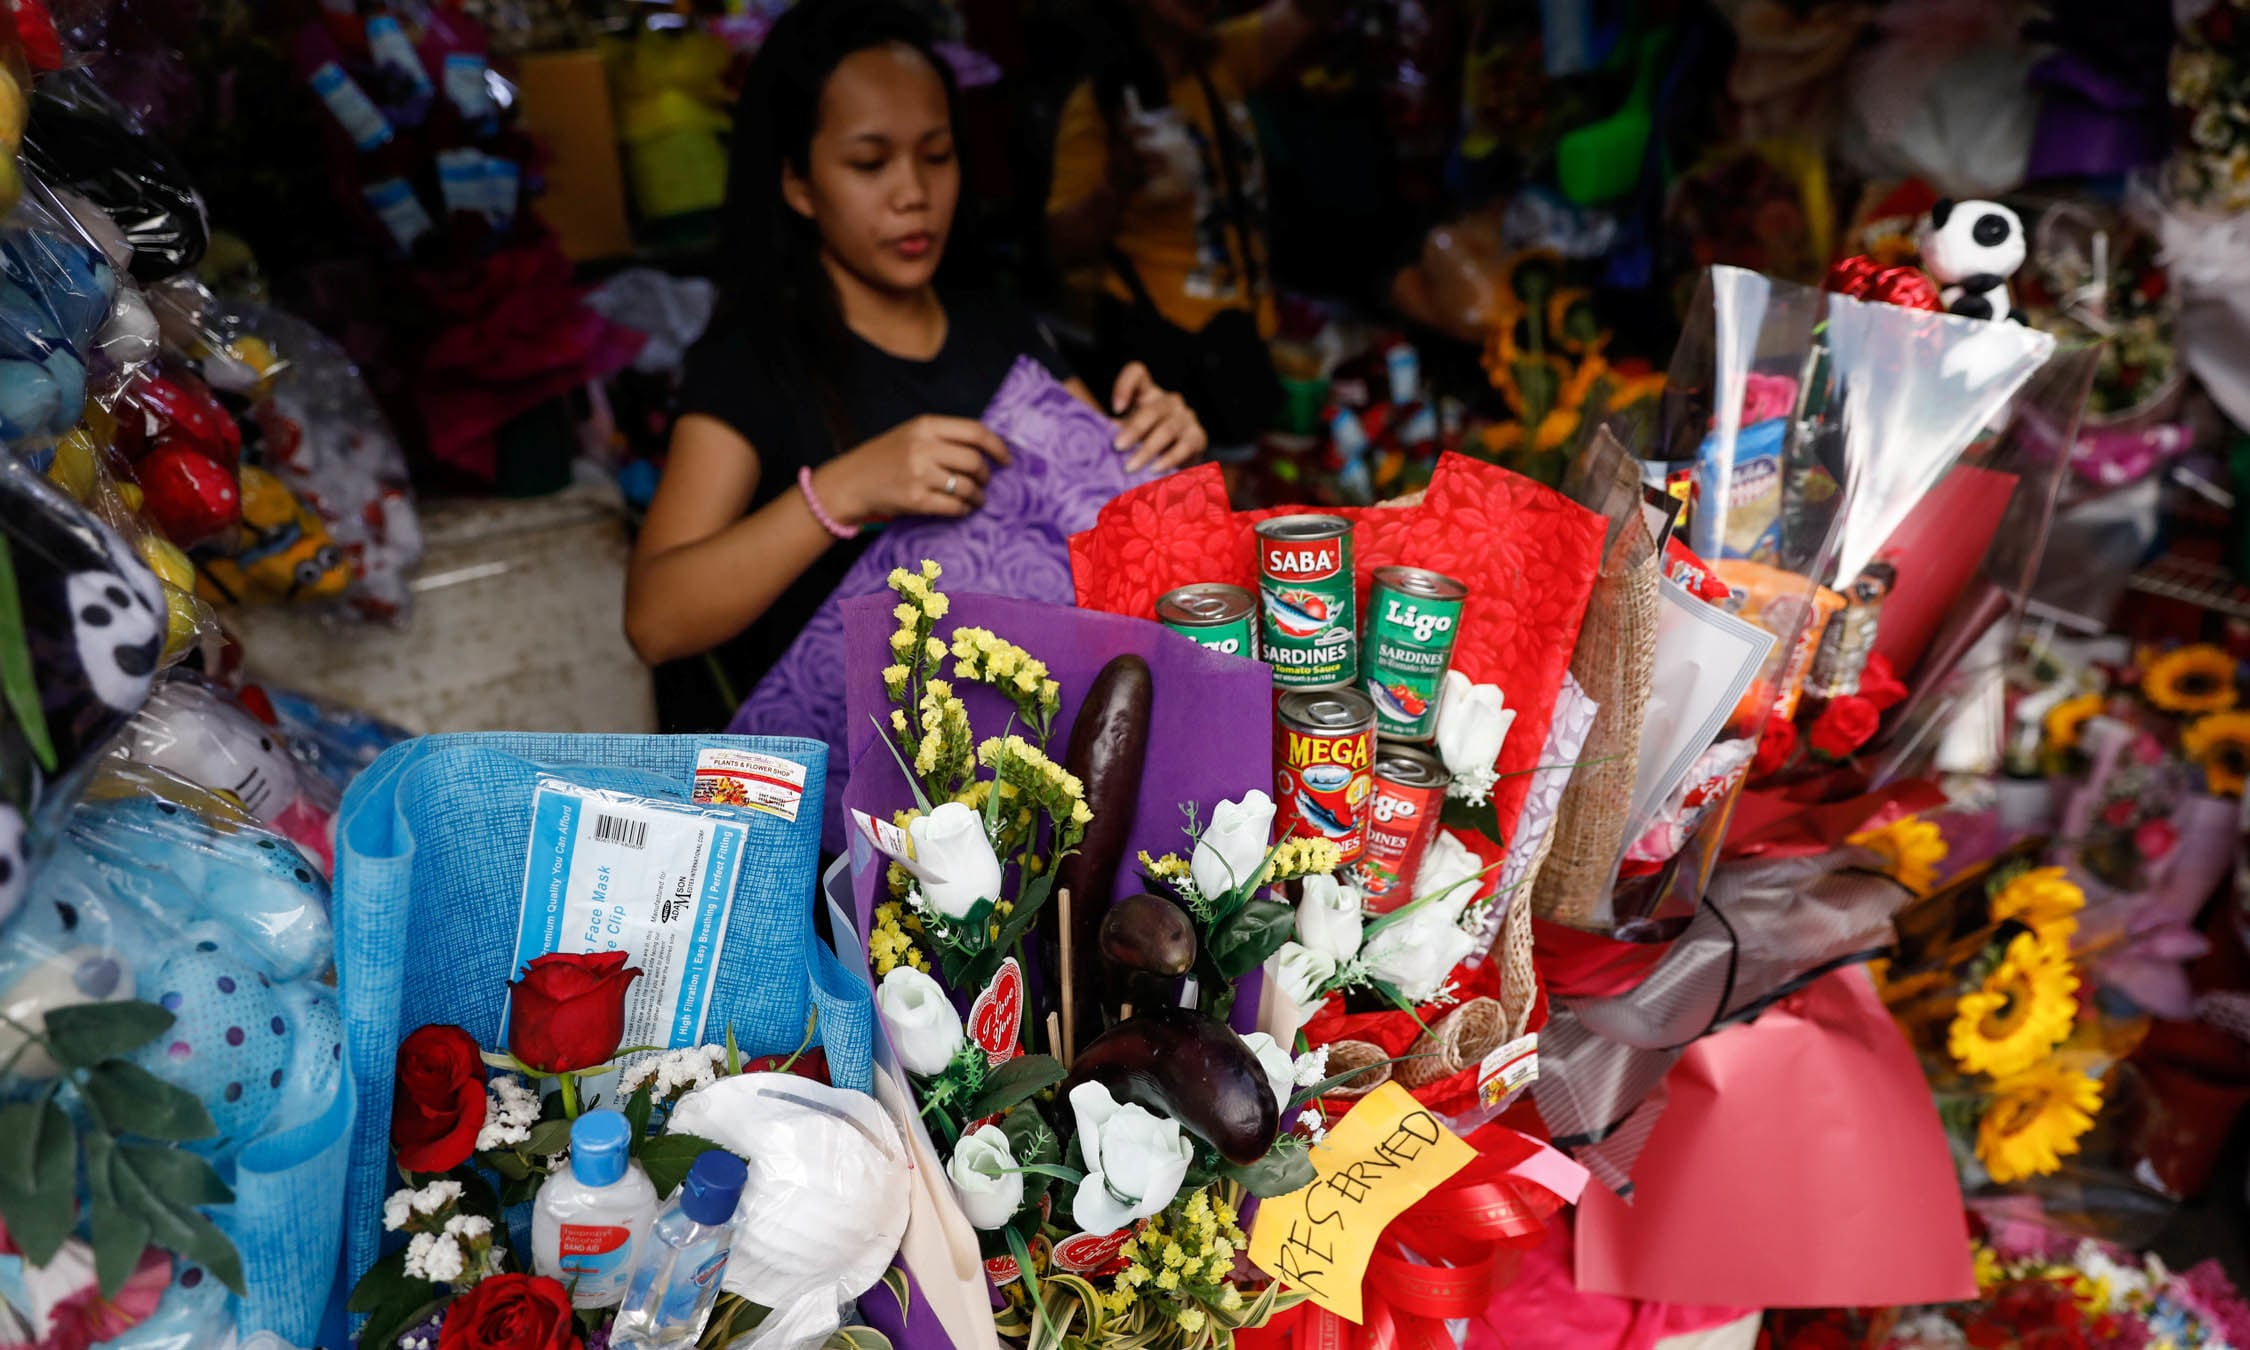 Special bouquets of flowers, including one with bottles of alcohol and an N95 mask, are sold in a flower market following confirmed cases of coronavirus in the country, a day before Valentines Day in Manila, Philippines on February 13. — Reuters